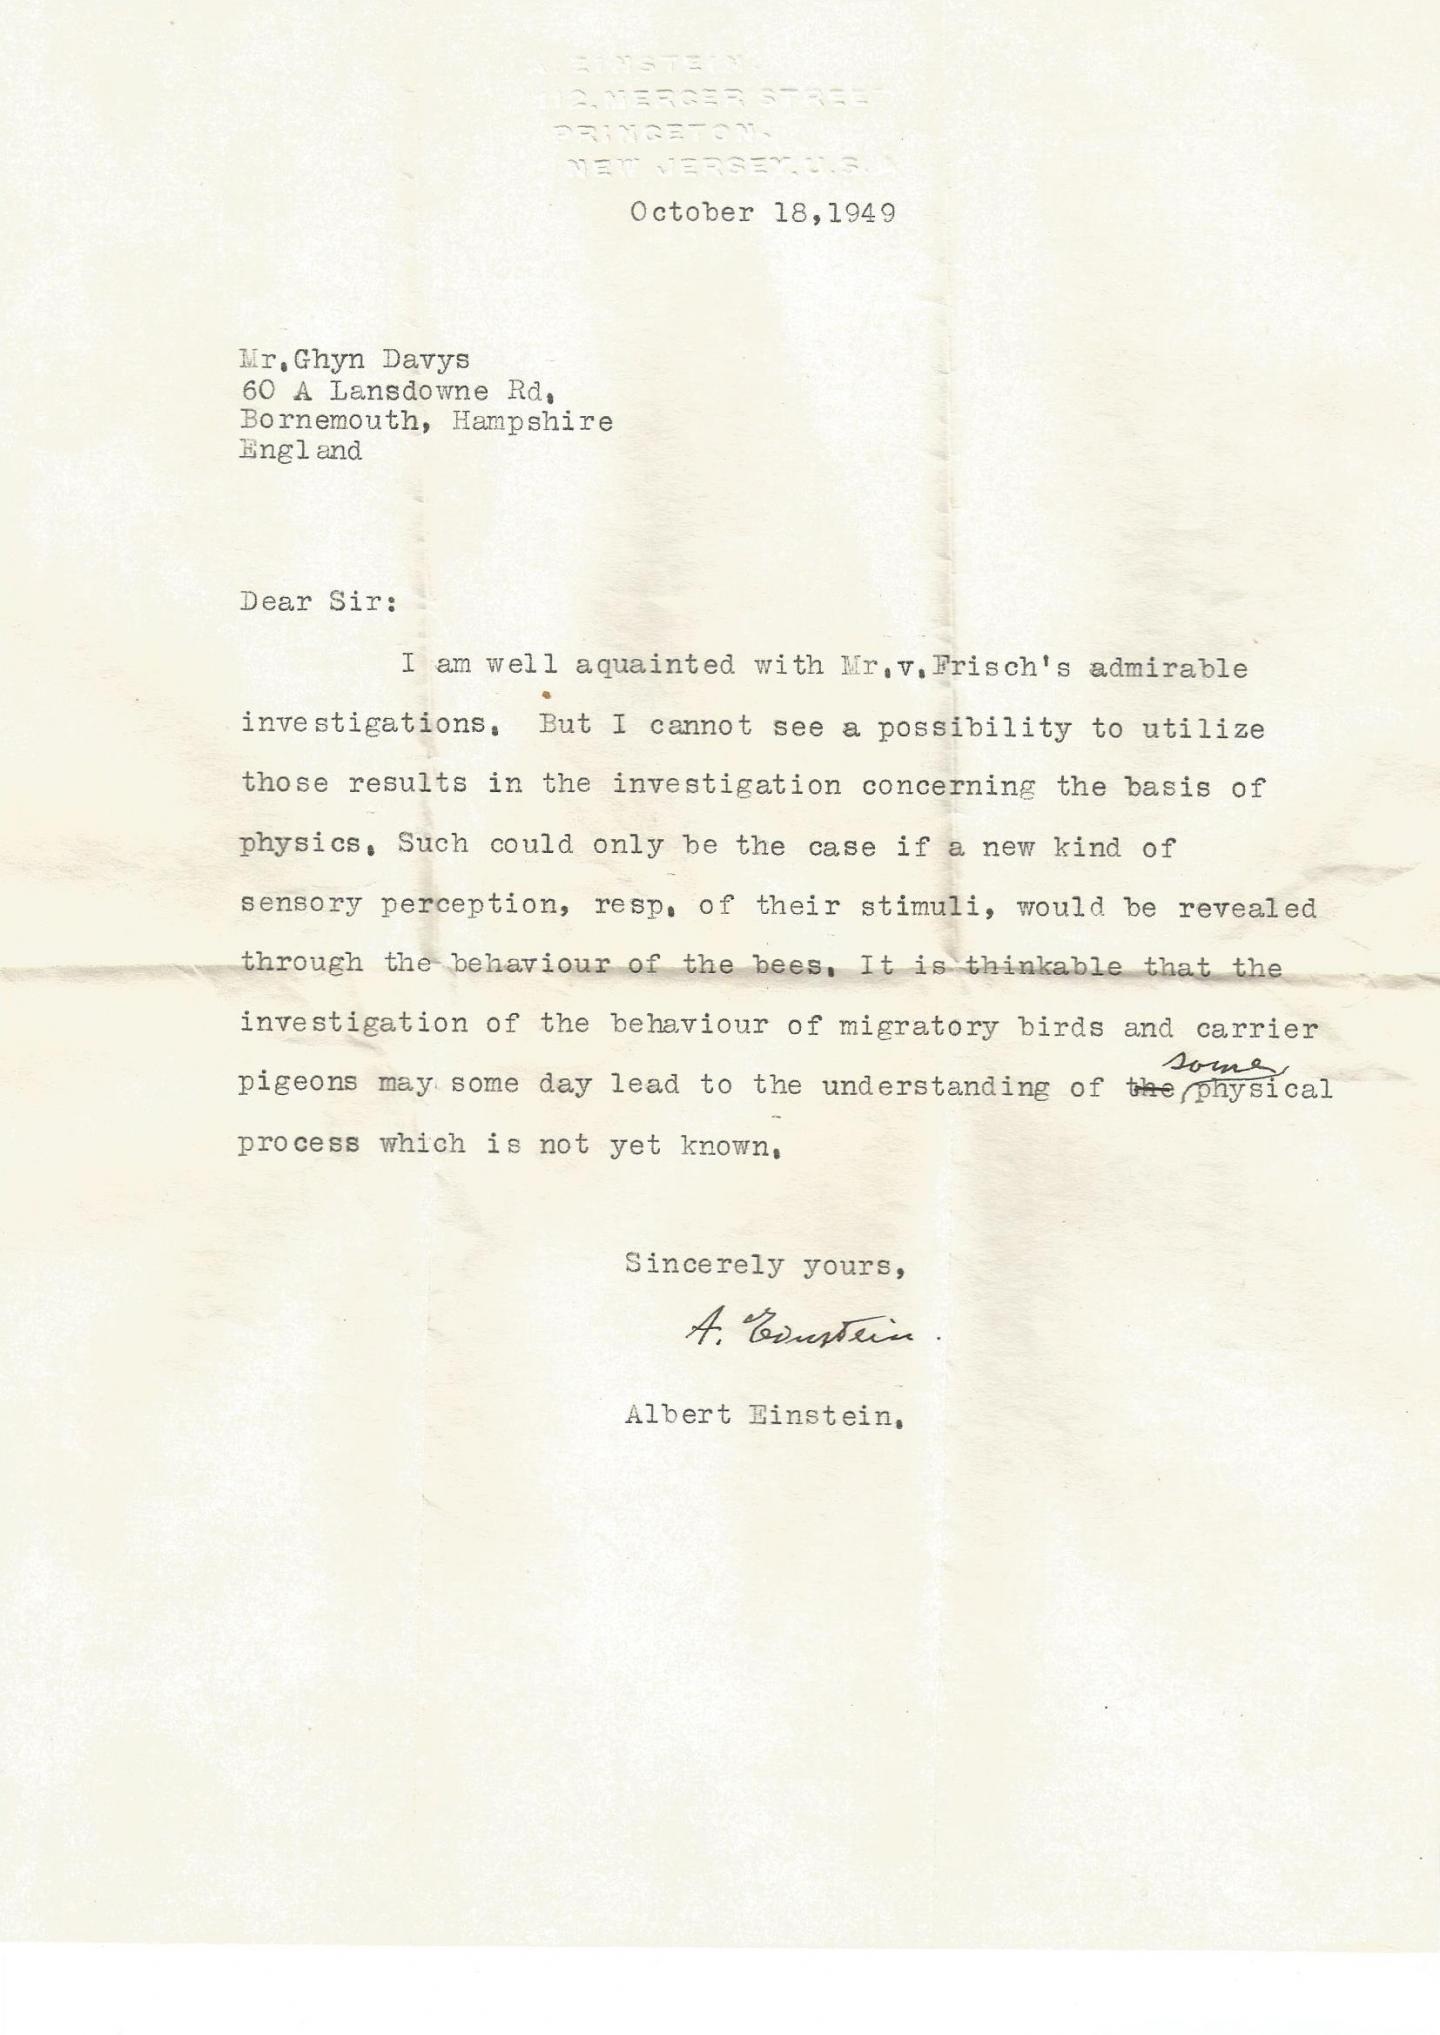 An old letter